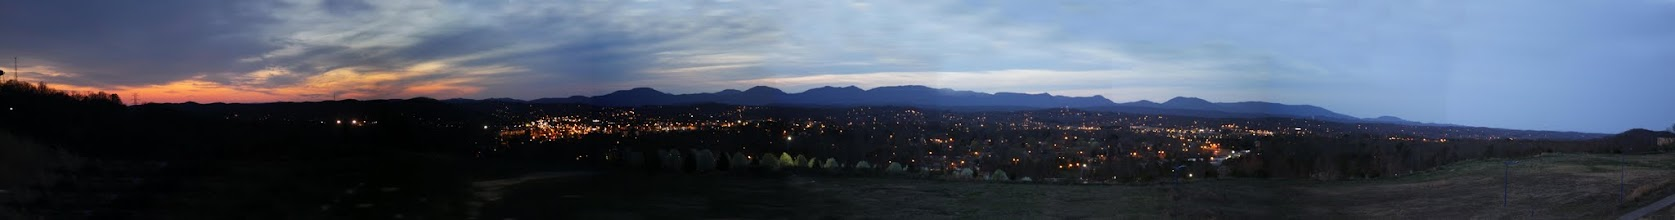 Photo: Oak Ridge at nightfall just after sunset from Oak Ridge Summit on Pine Ridge - 90 MM lens setting